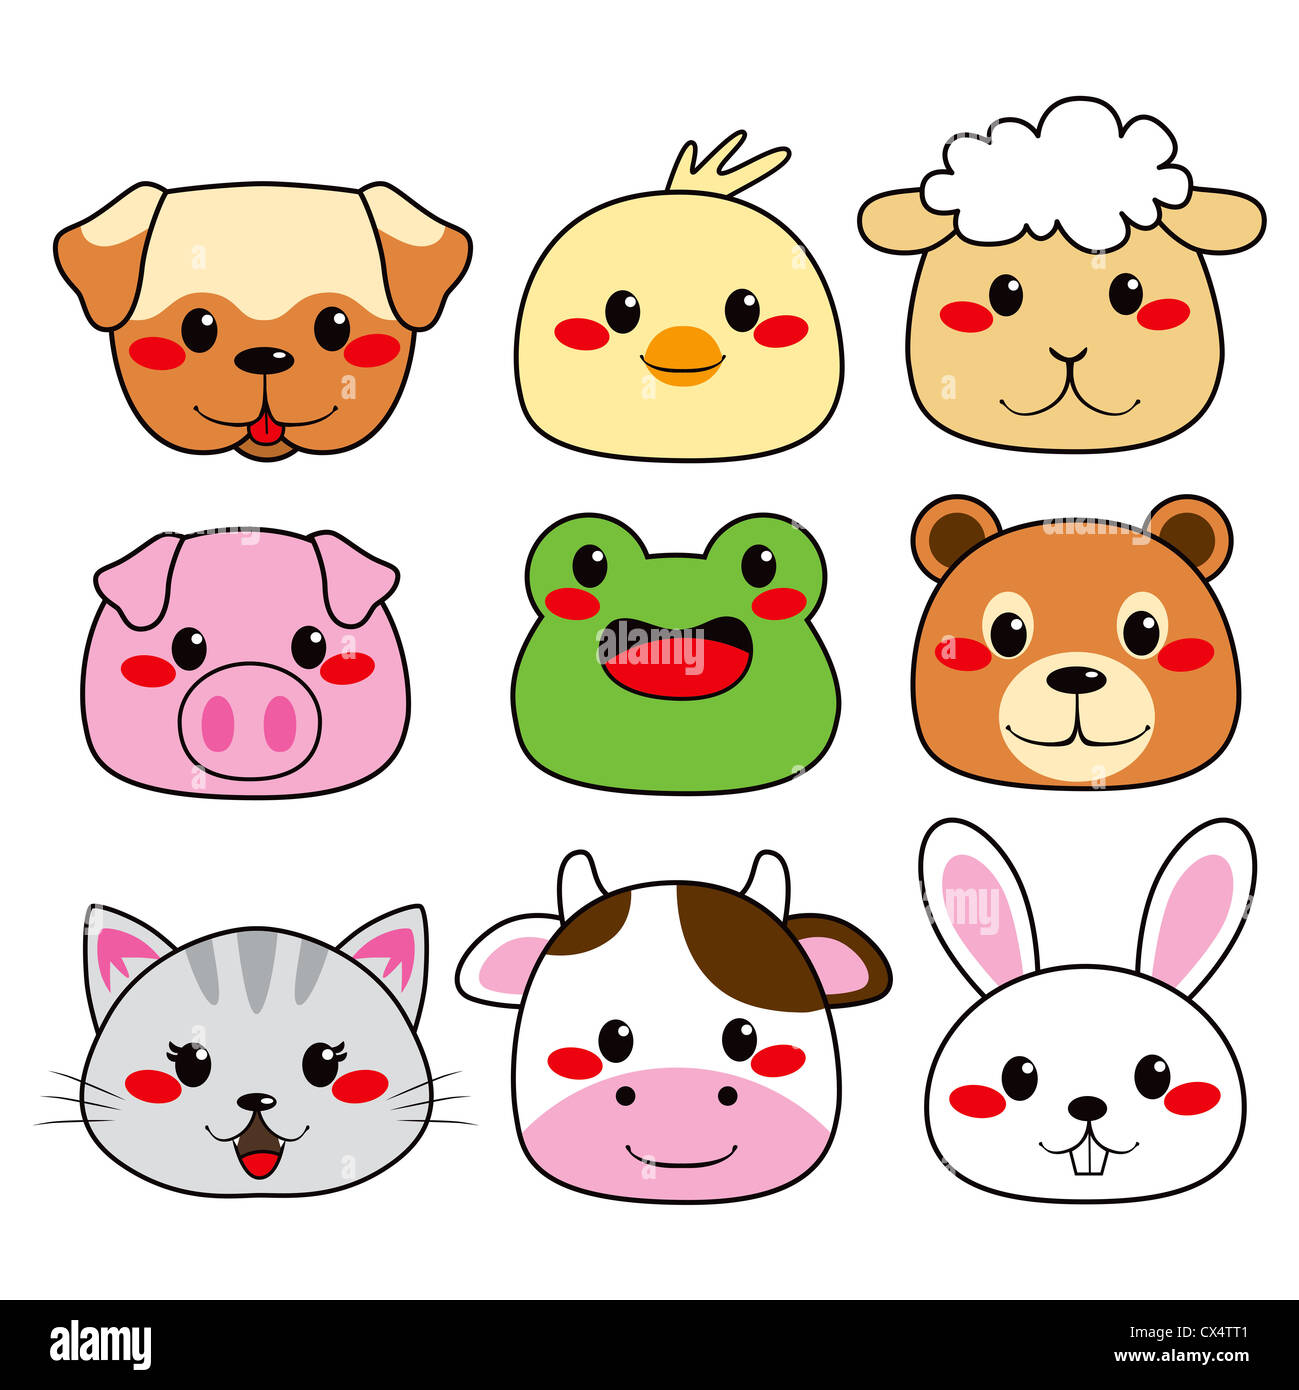 Collection of nine funny and cute happy animal faces smiling Stock Photo